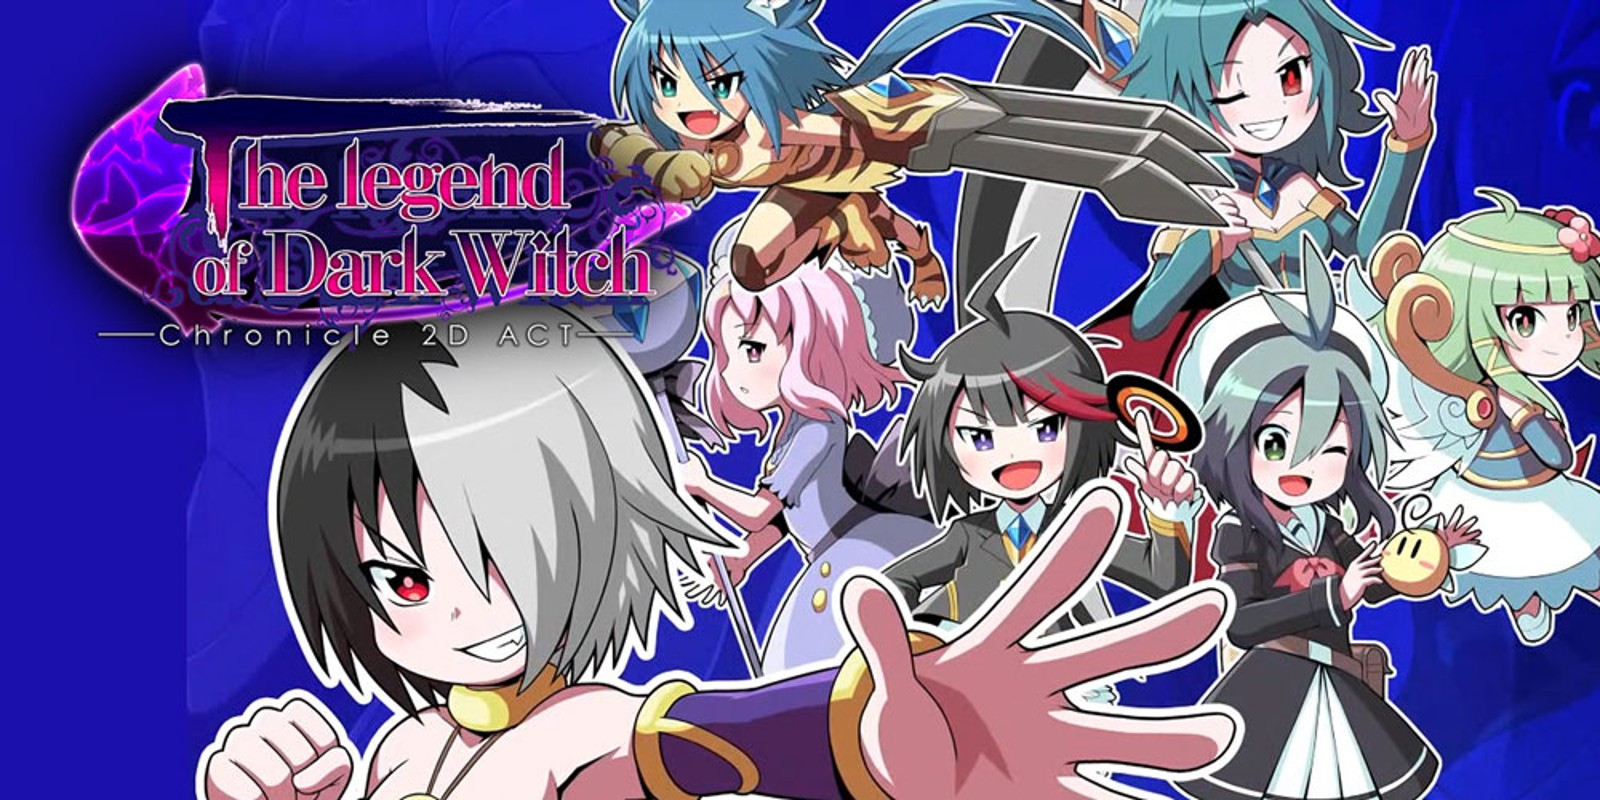 The Legend of Dark Witch - Chronicle 2D ACT